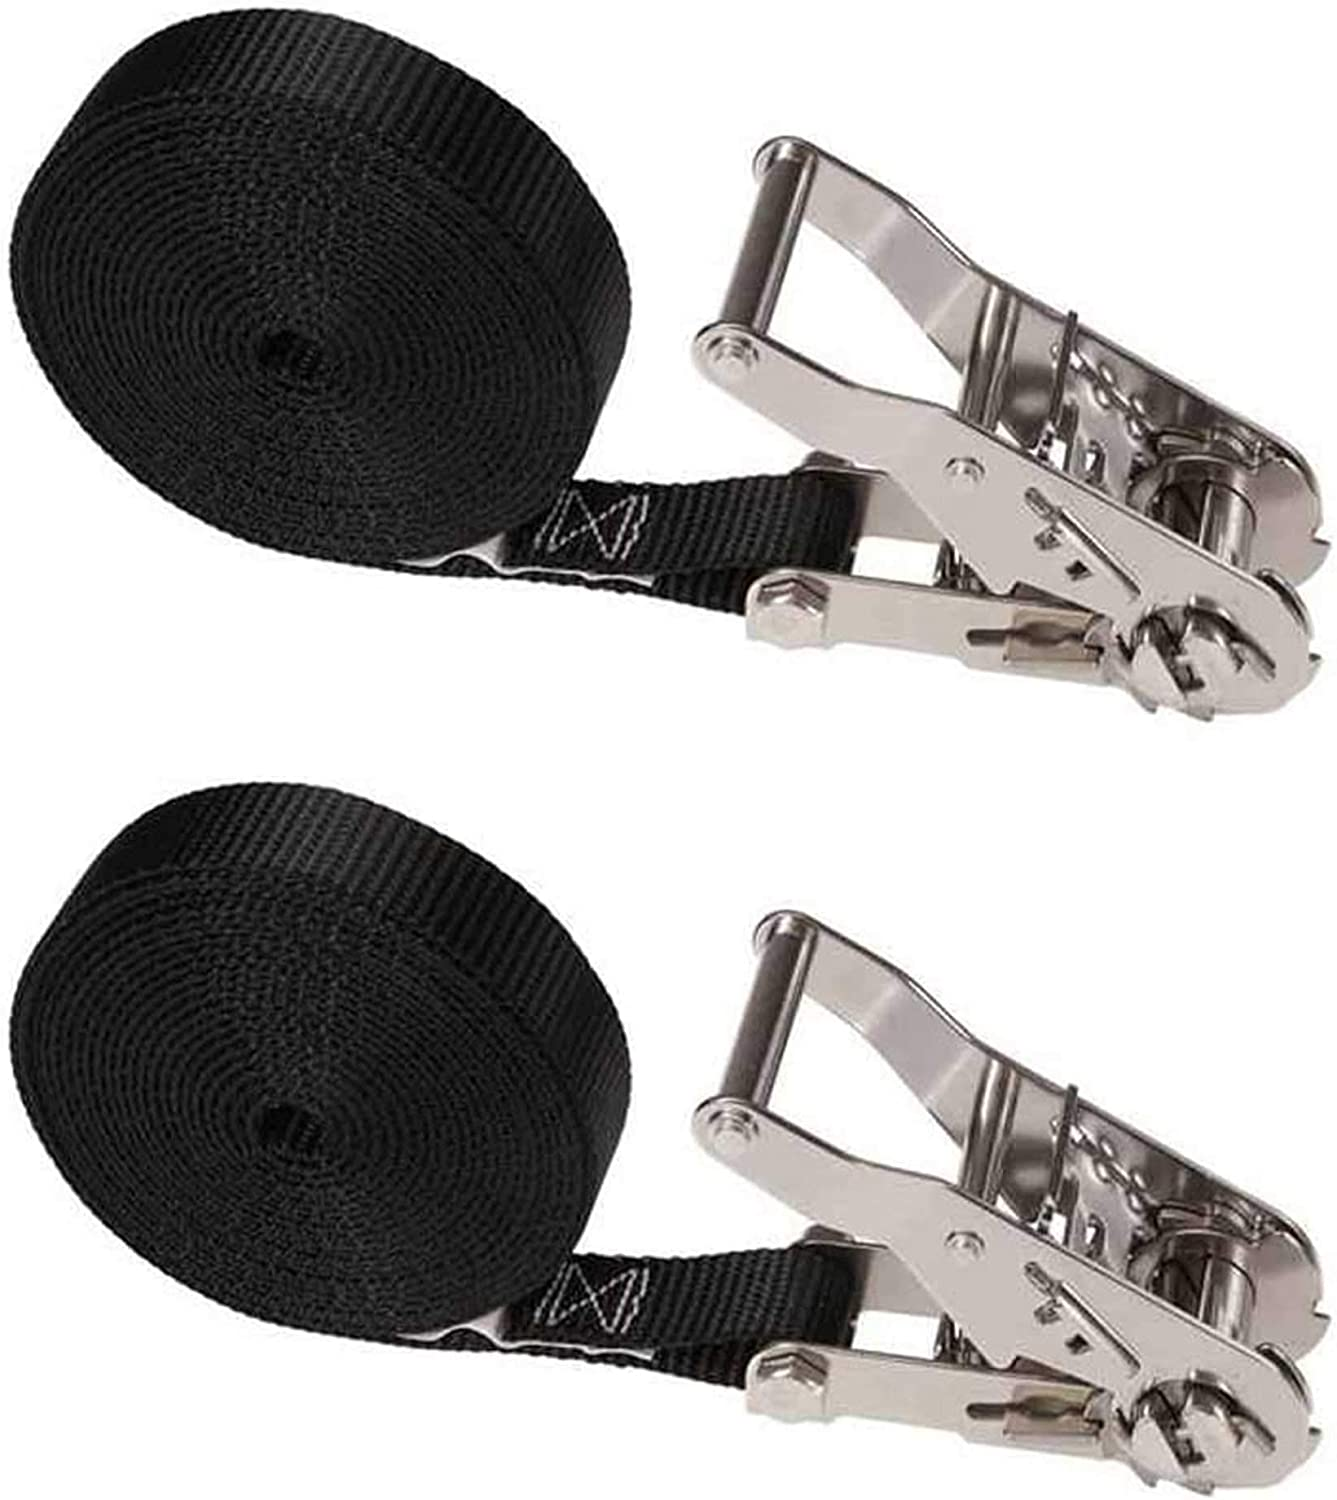 Fresno Mall US Cargo Control - Trust Stainless Steel Tie In Down 1 Ratchet Strap